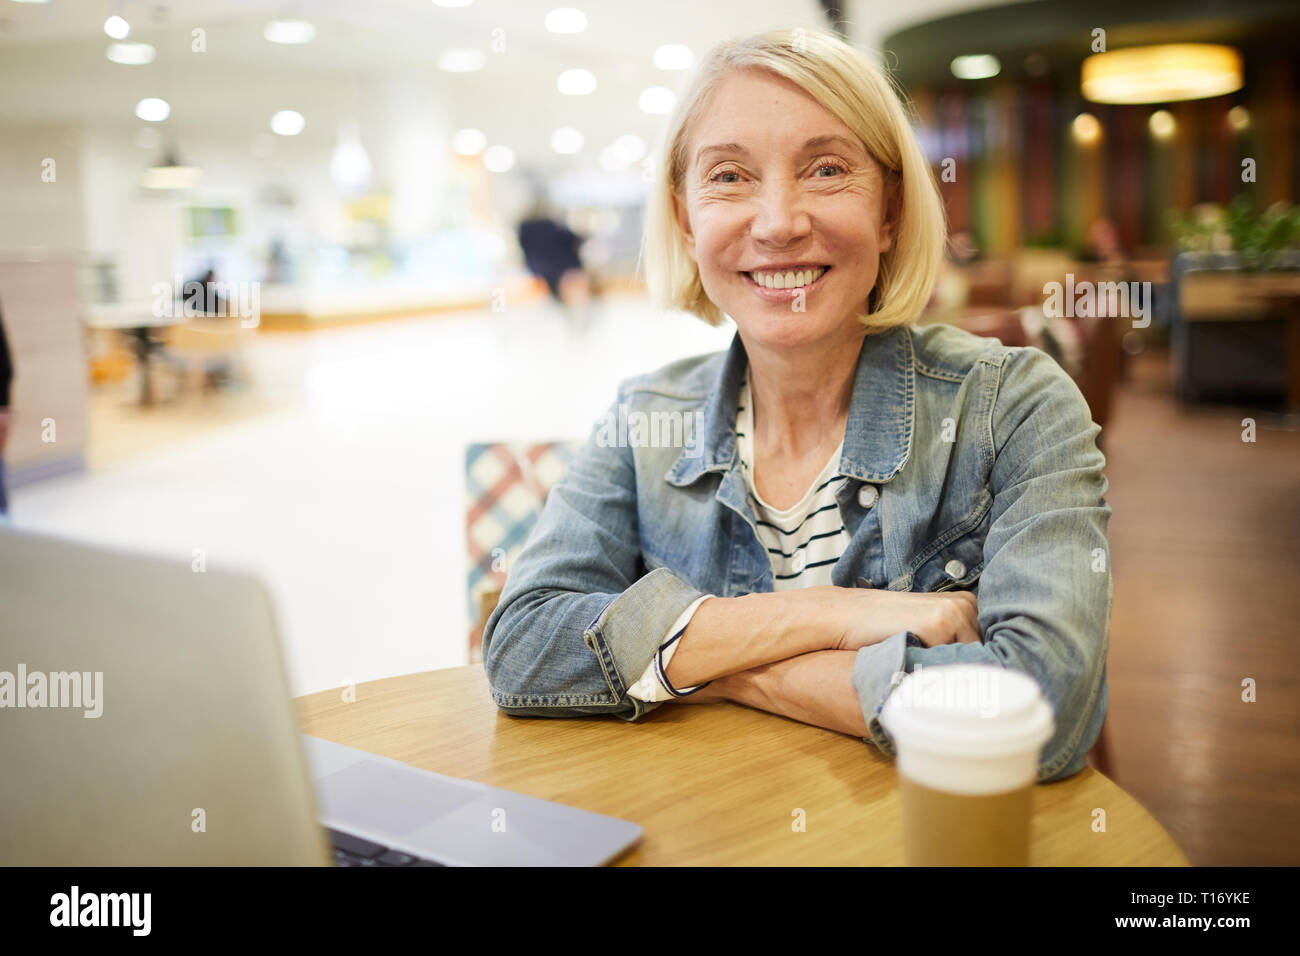 Cheerful freelance woman working in cafe - Stock Image